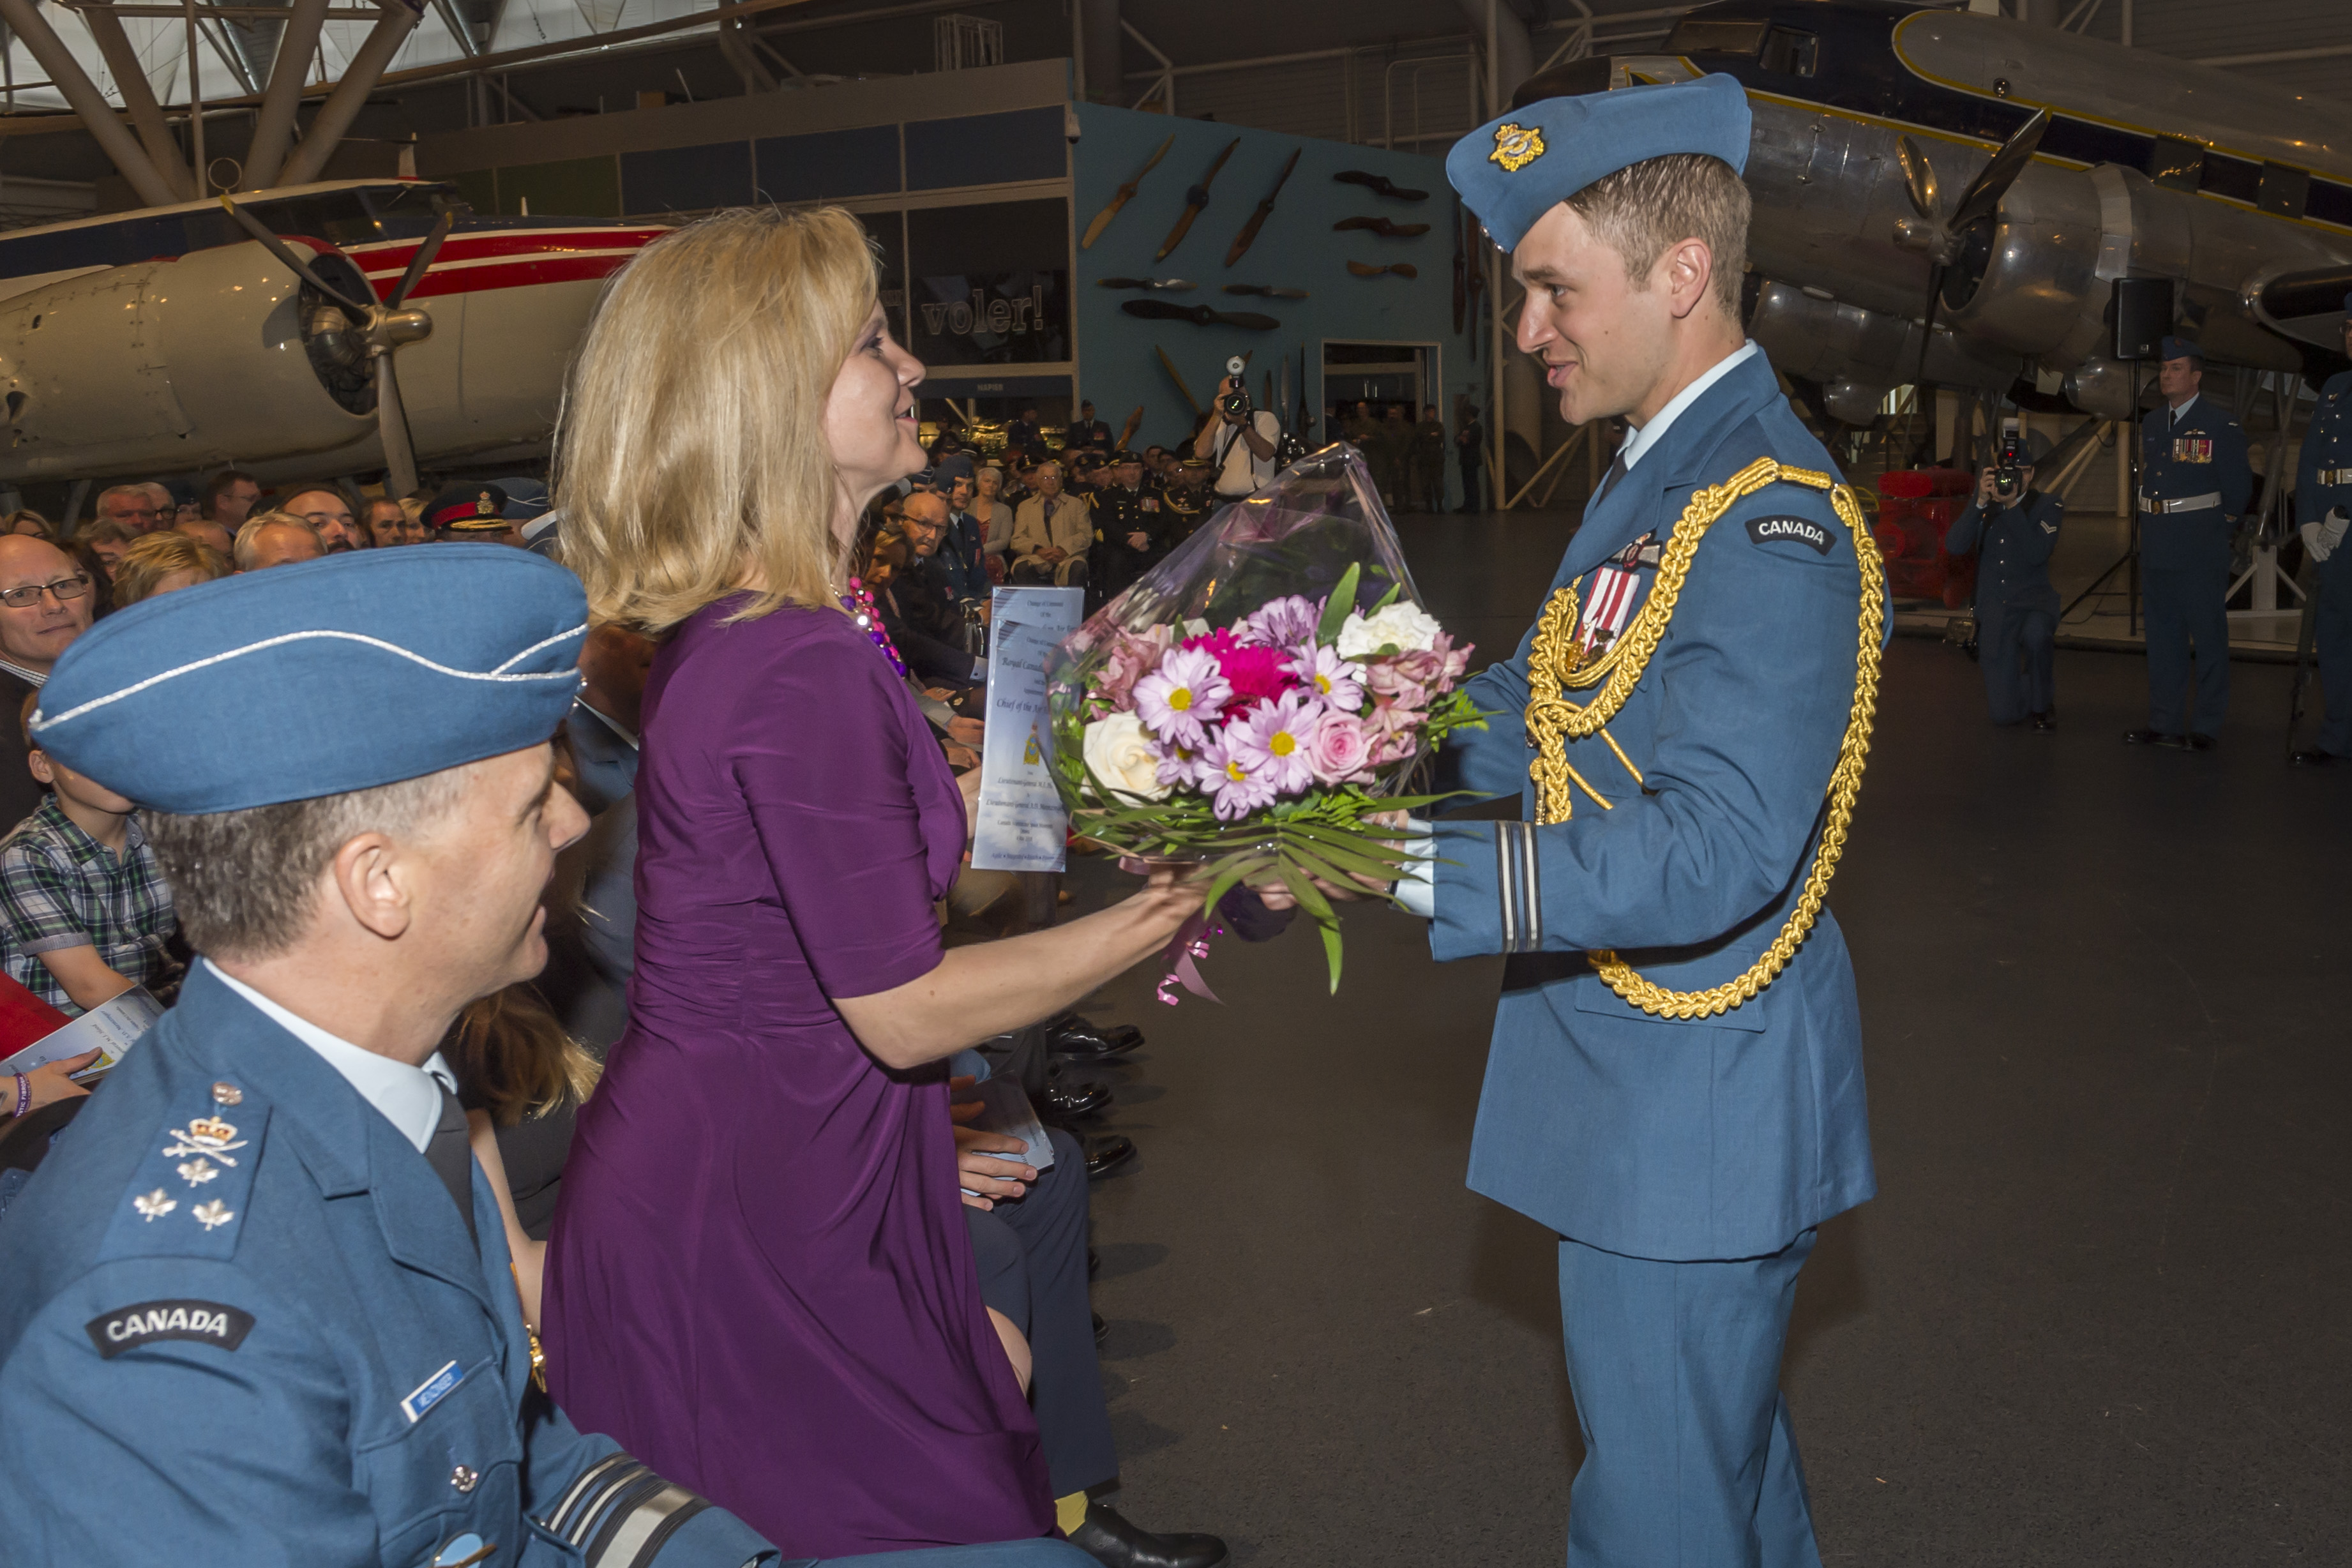 Captain Olivier Dupuis, aide-de-camp, presents Ms. Joy Meinzinger with flowers, welcoming her on behalf of all Air Force personnel, as Lieutenant-General Meinzinger looks on. PHOTO: Corporal Alana Morin, FA03-2018-0040-053